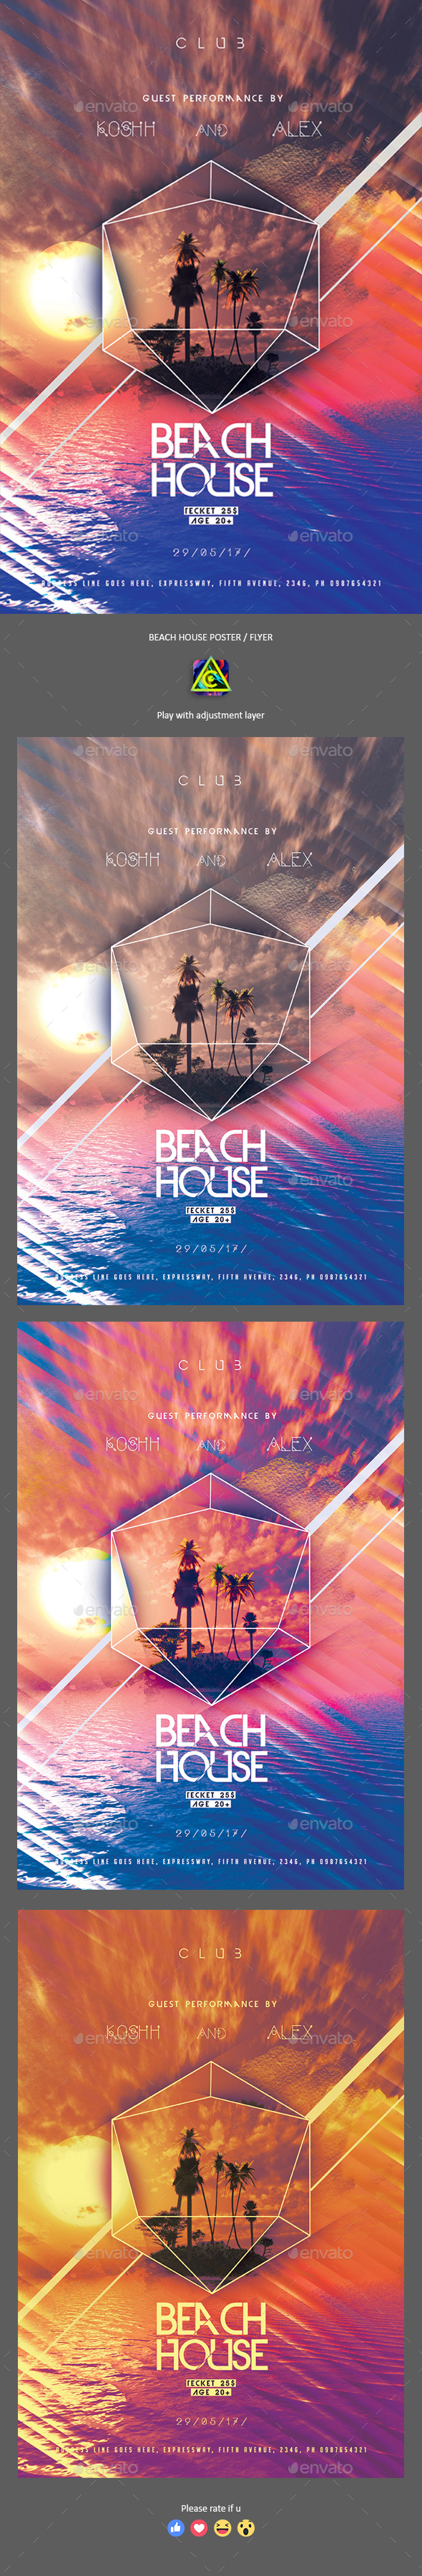 Beach House Poster / Flyer - Clubs & Parties Events